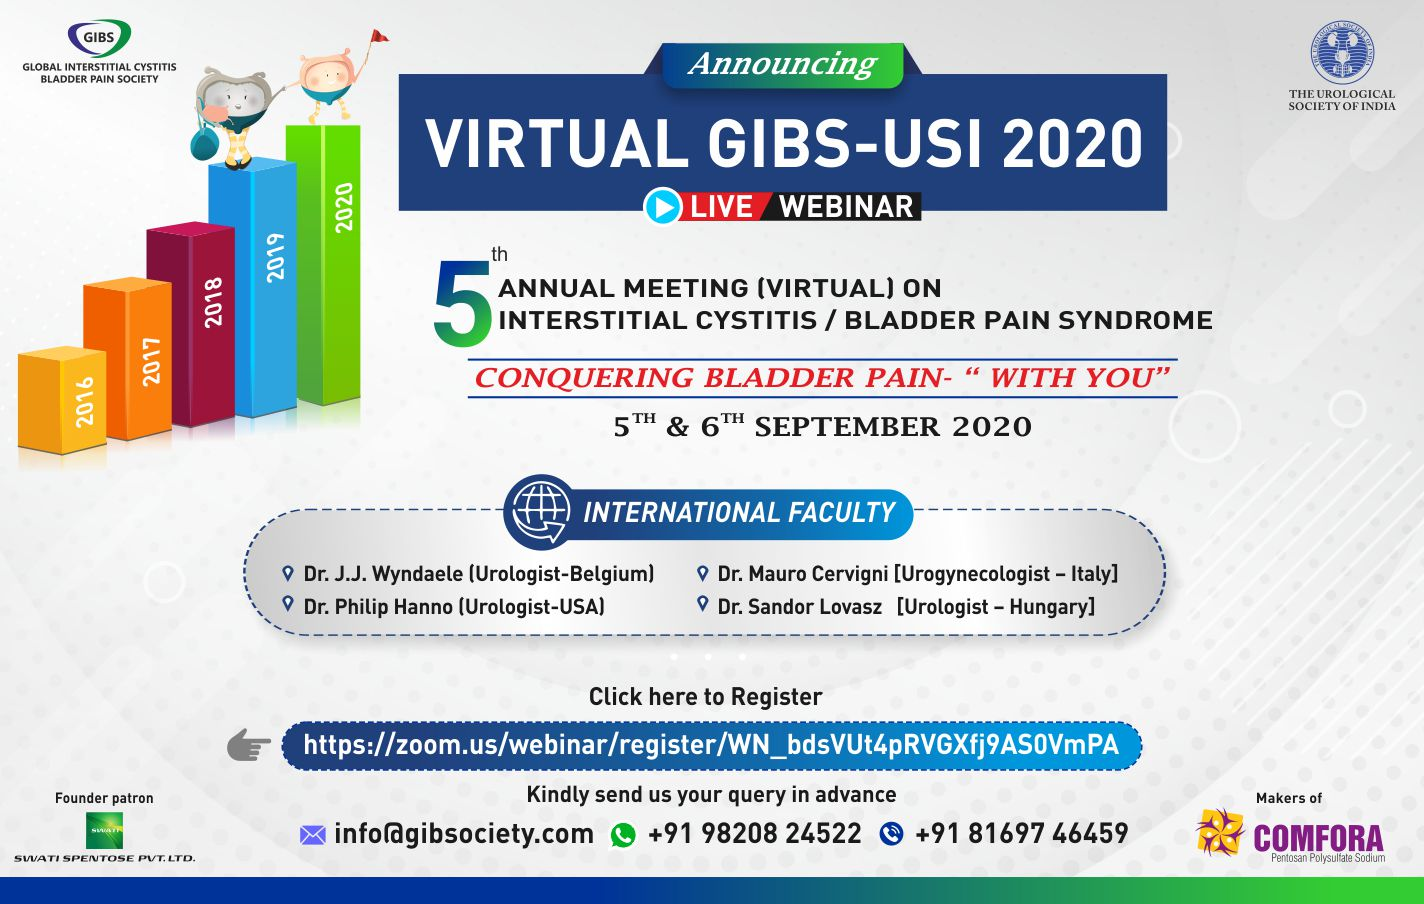 VIRTUAL GIBS - USI 2020 Annual Meeting on IC/BPS